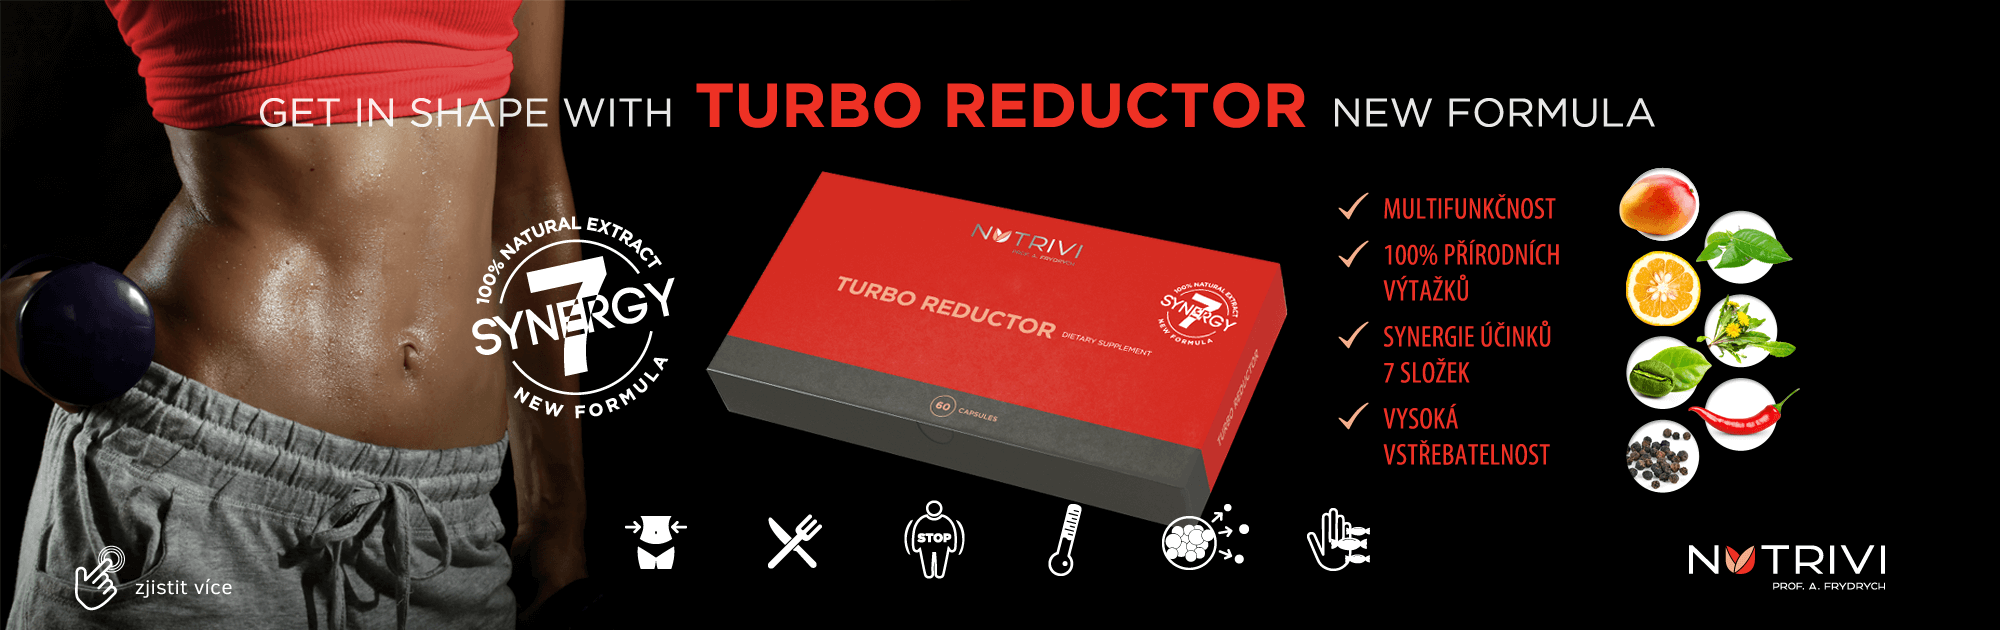 Turbo reductor